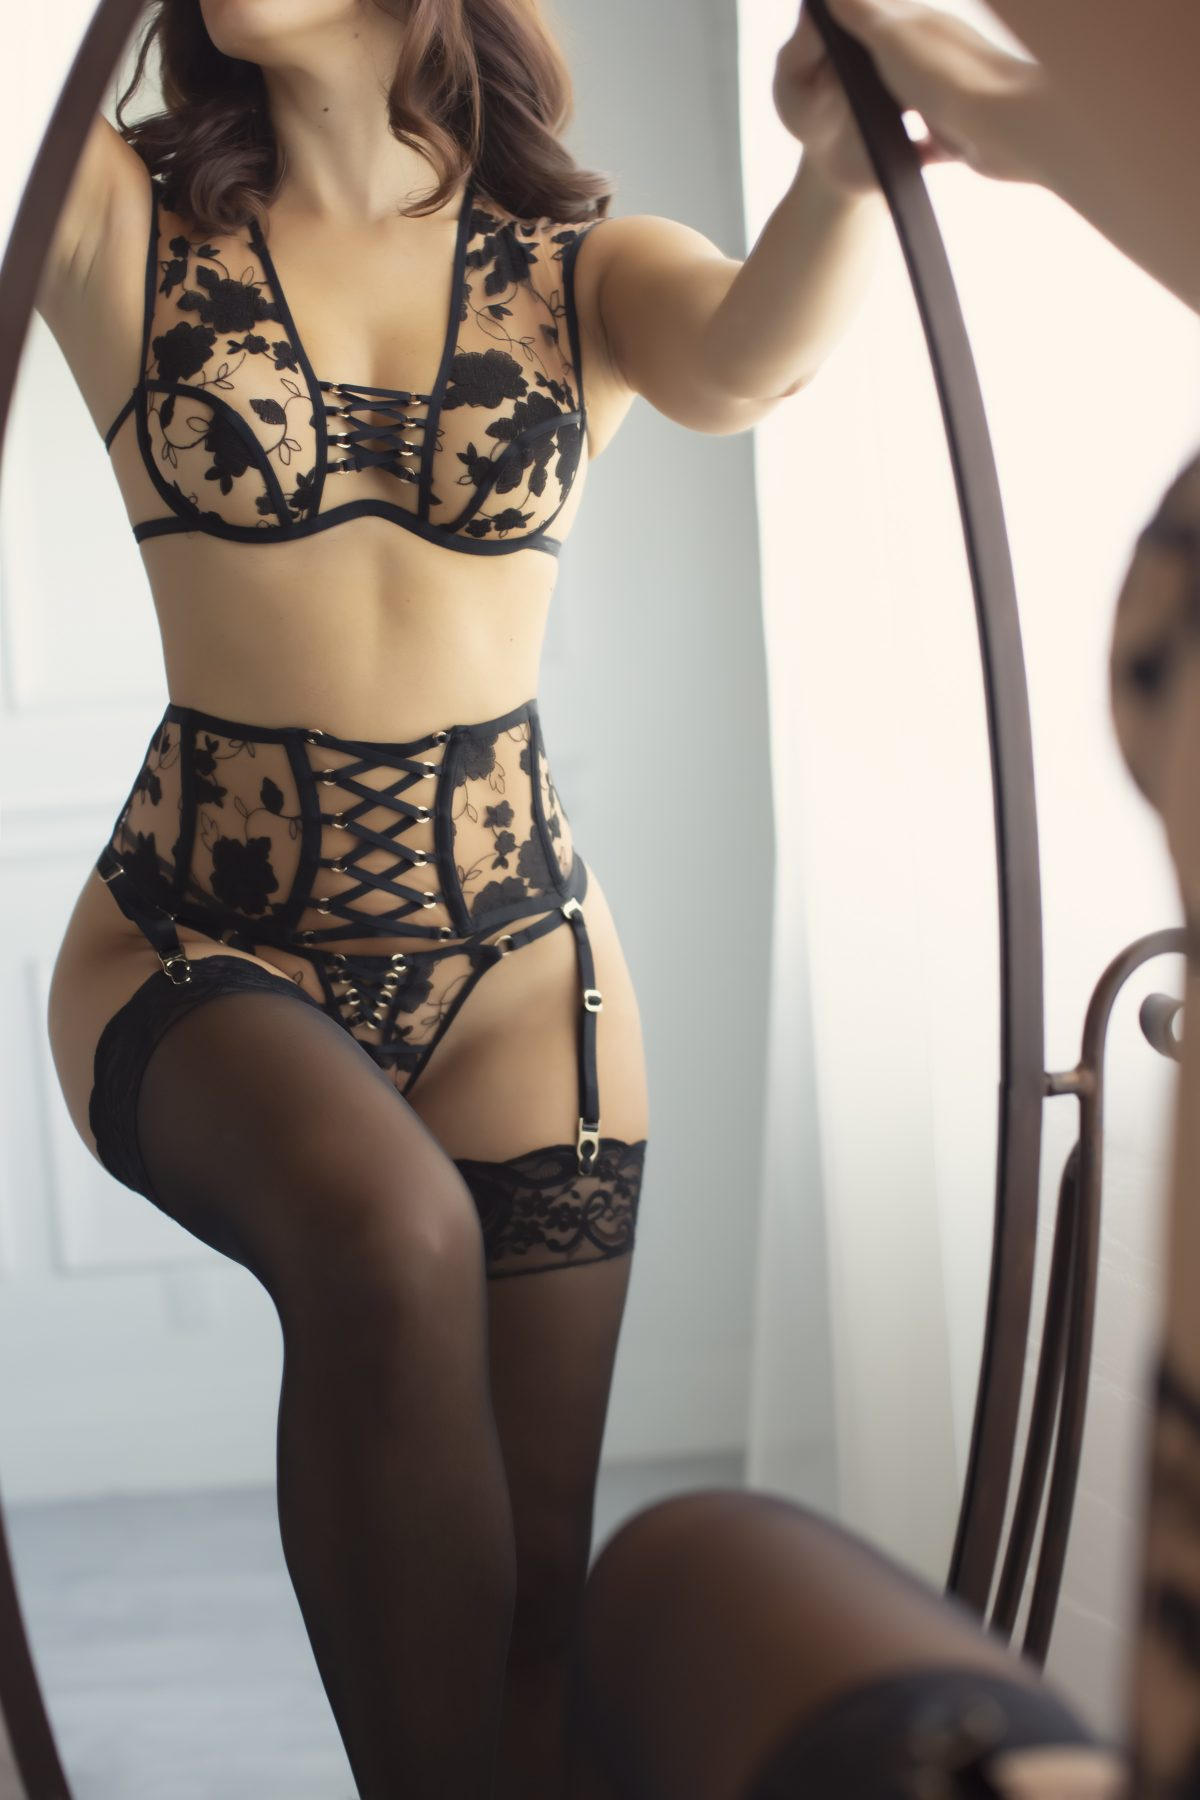 Toronto escorts companion upscale Isabella Interests Duo Couple-friendly Non-smoking Age Young Figure Slender Tall Breasts Natural Hair Brunette Ethnicity European Tattoos None New Photos